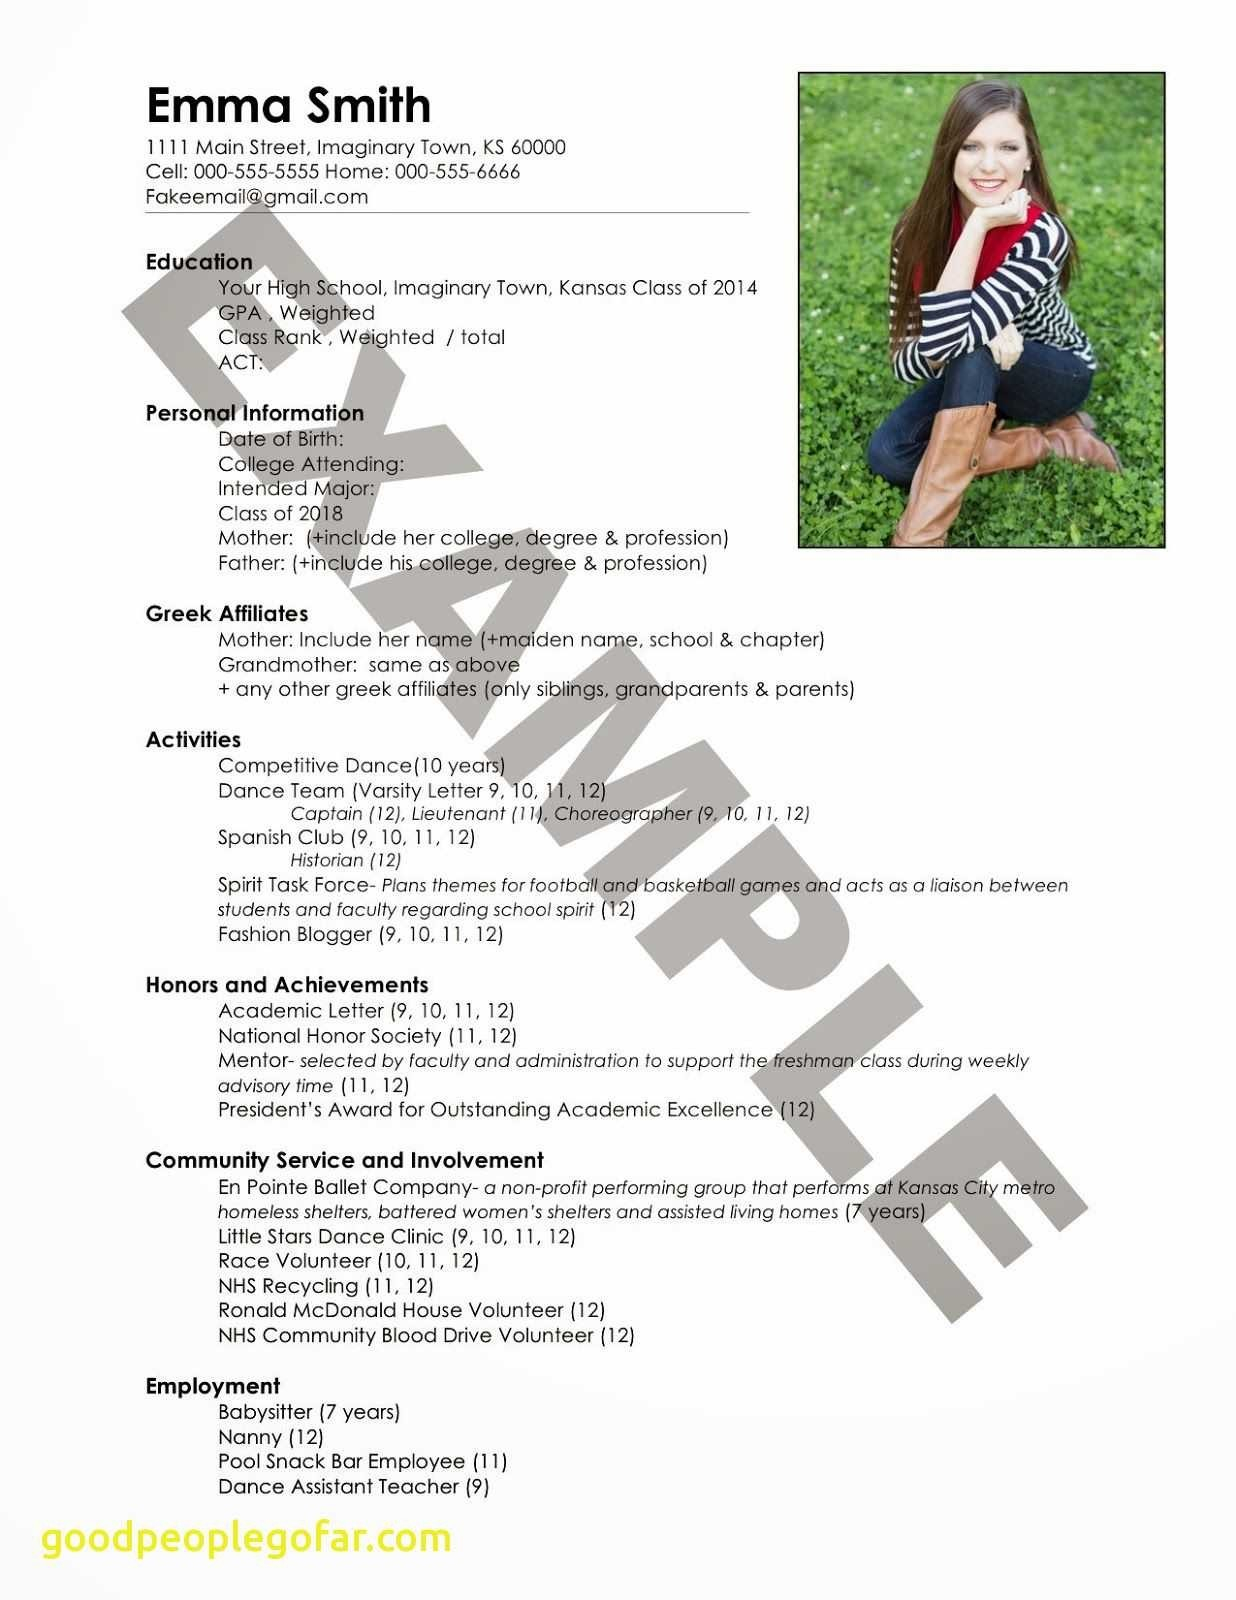 Blogger Resume Template - Fashion Design Resume Awesome Helpdesk Resume Template New sorority